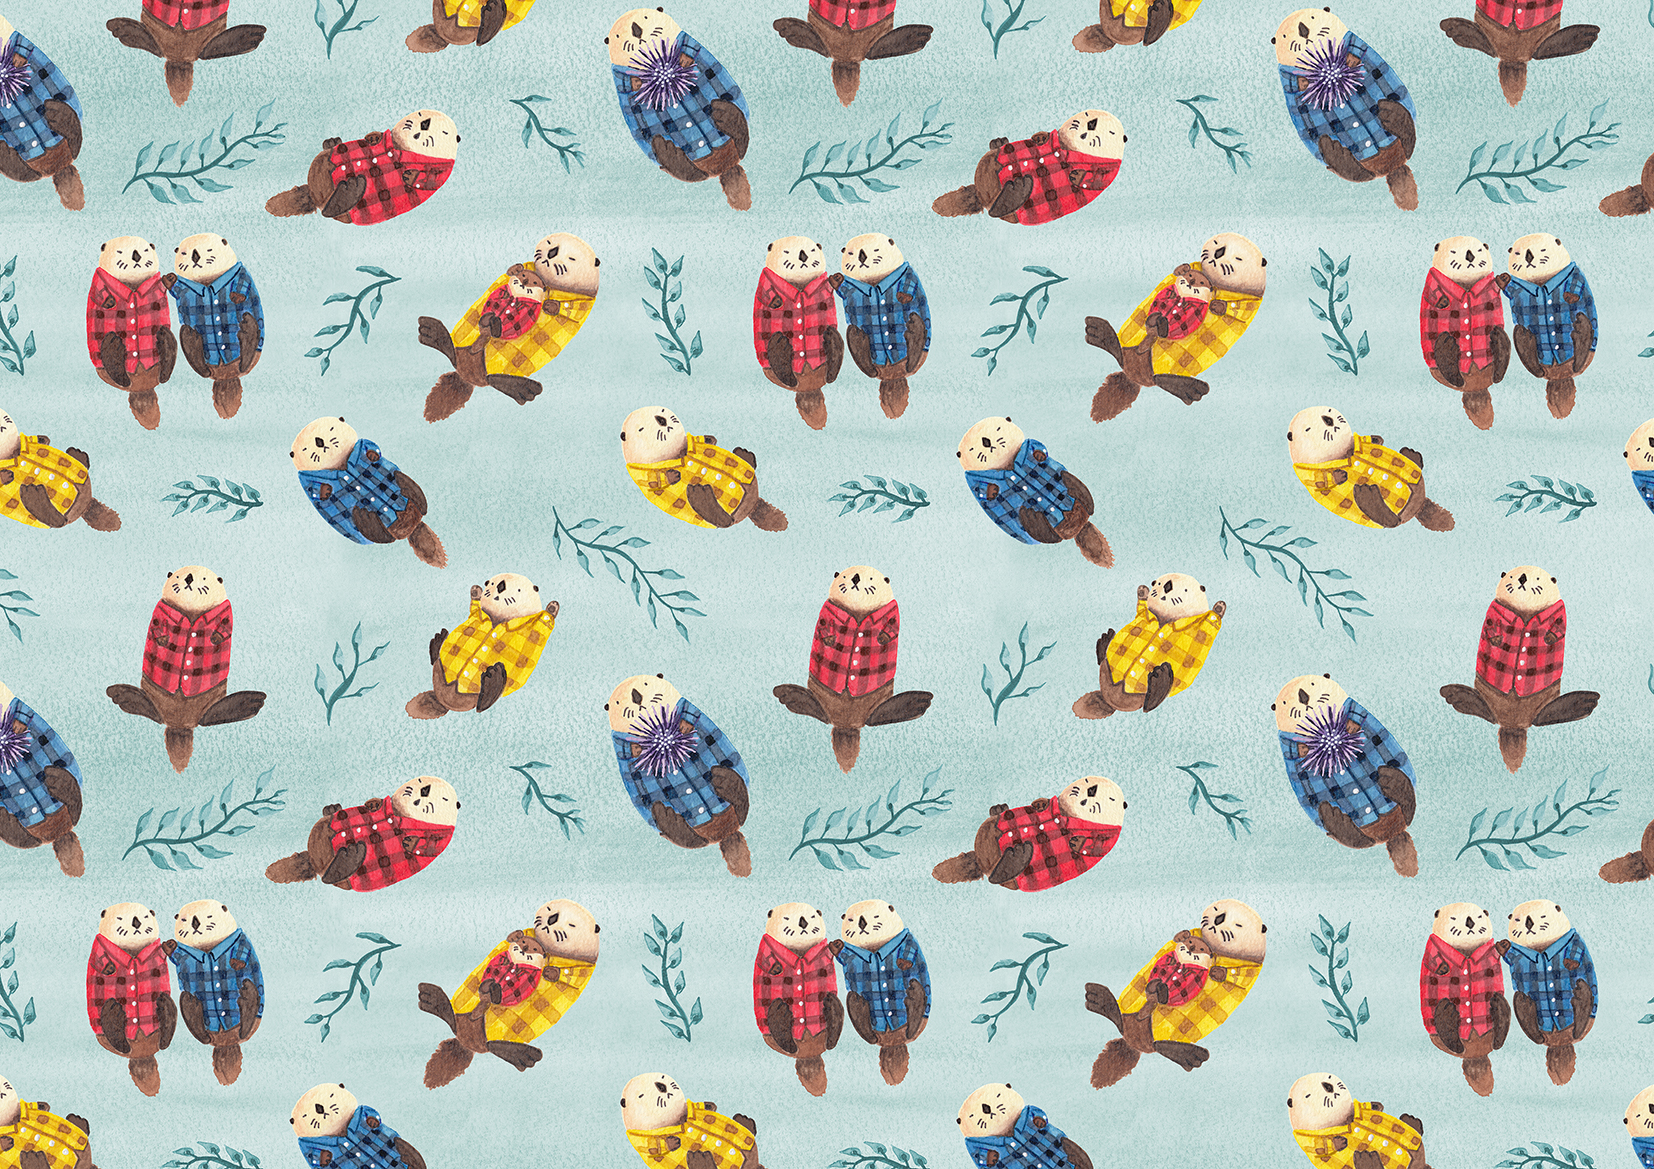 Claire Hubbard Work - Sea Otters Wearing Plaid 100dpi.jpg